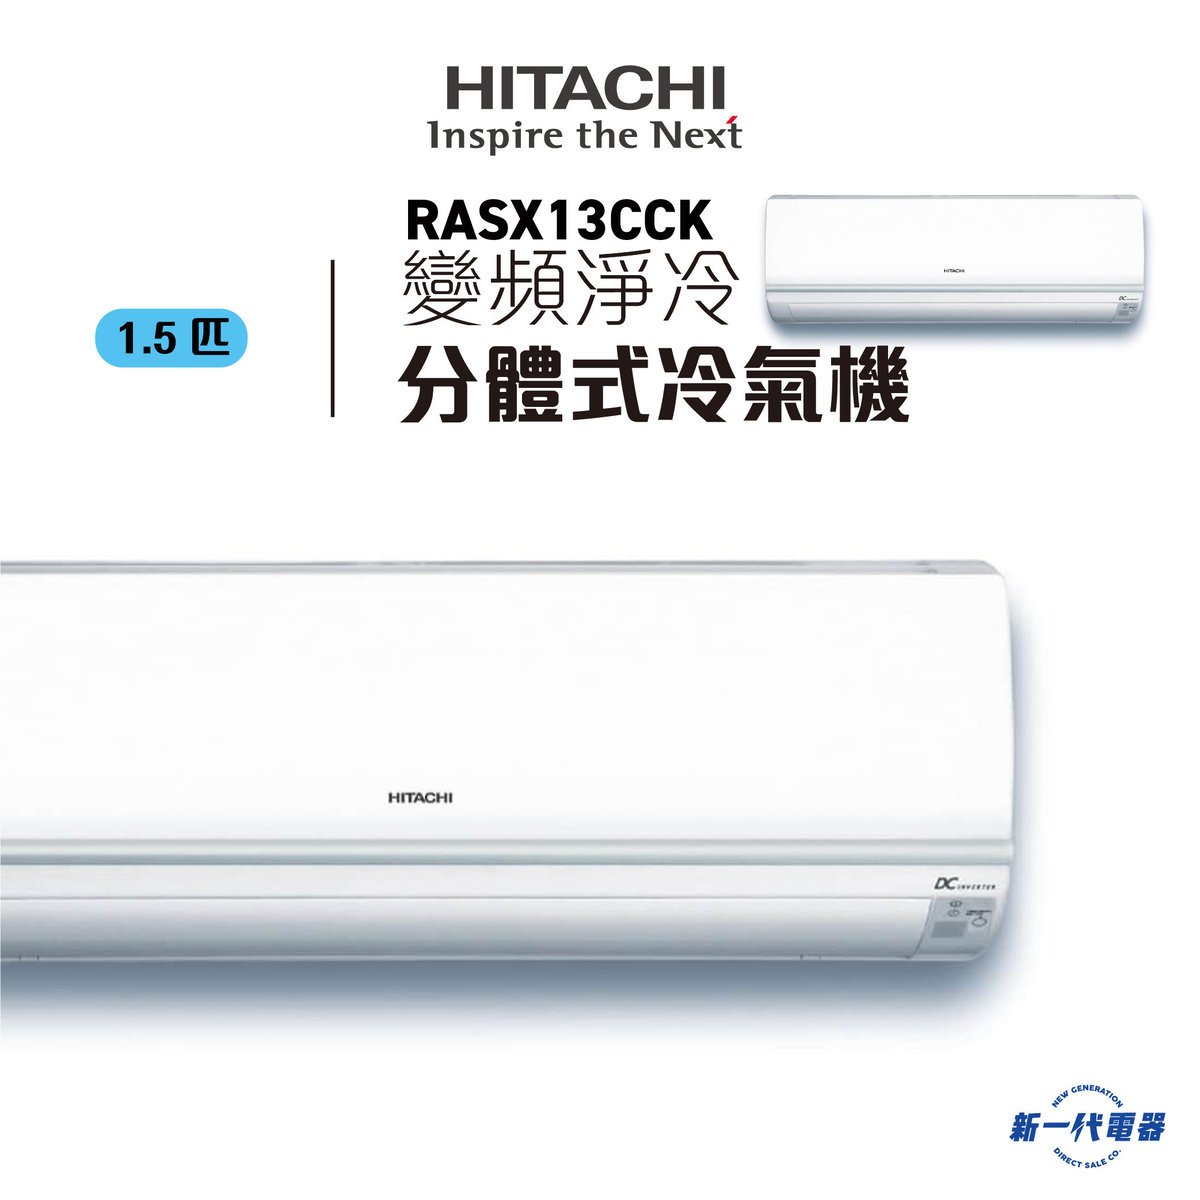 RASX13CCK   Single Split Type Air Conditioner